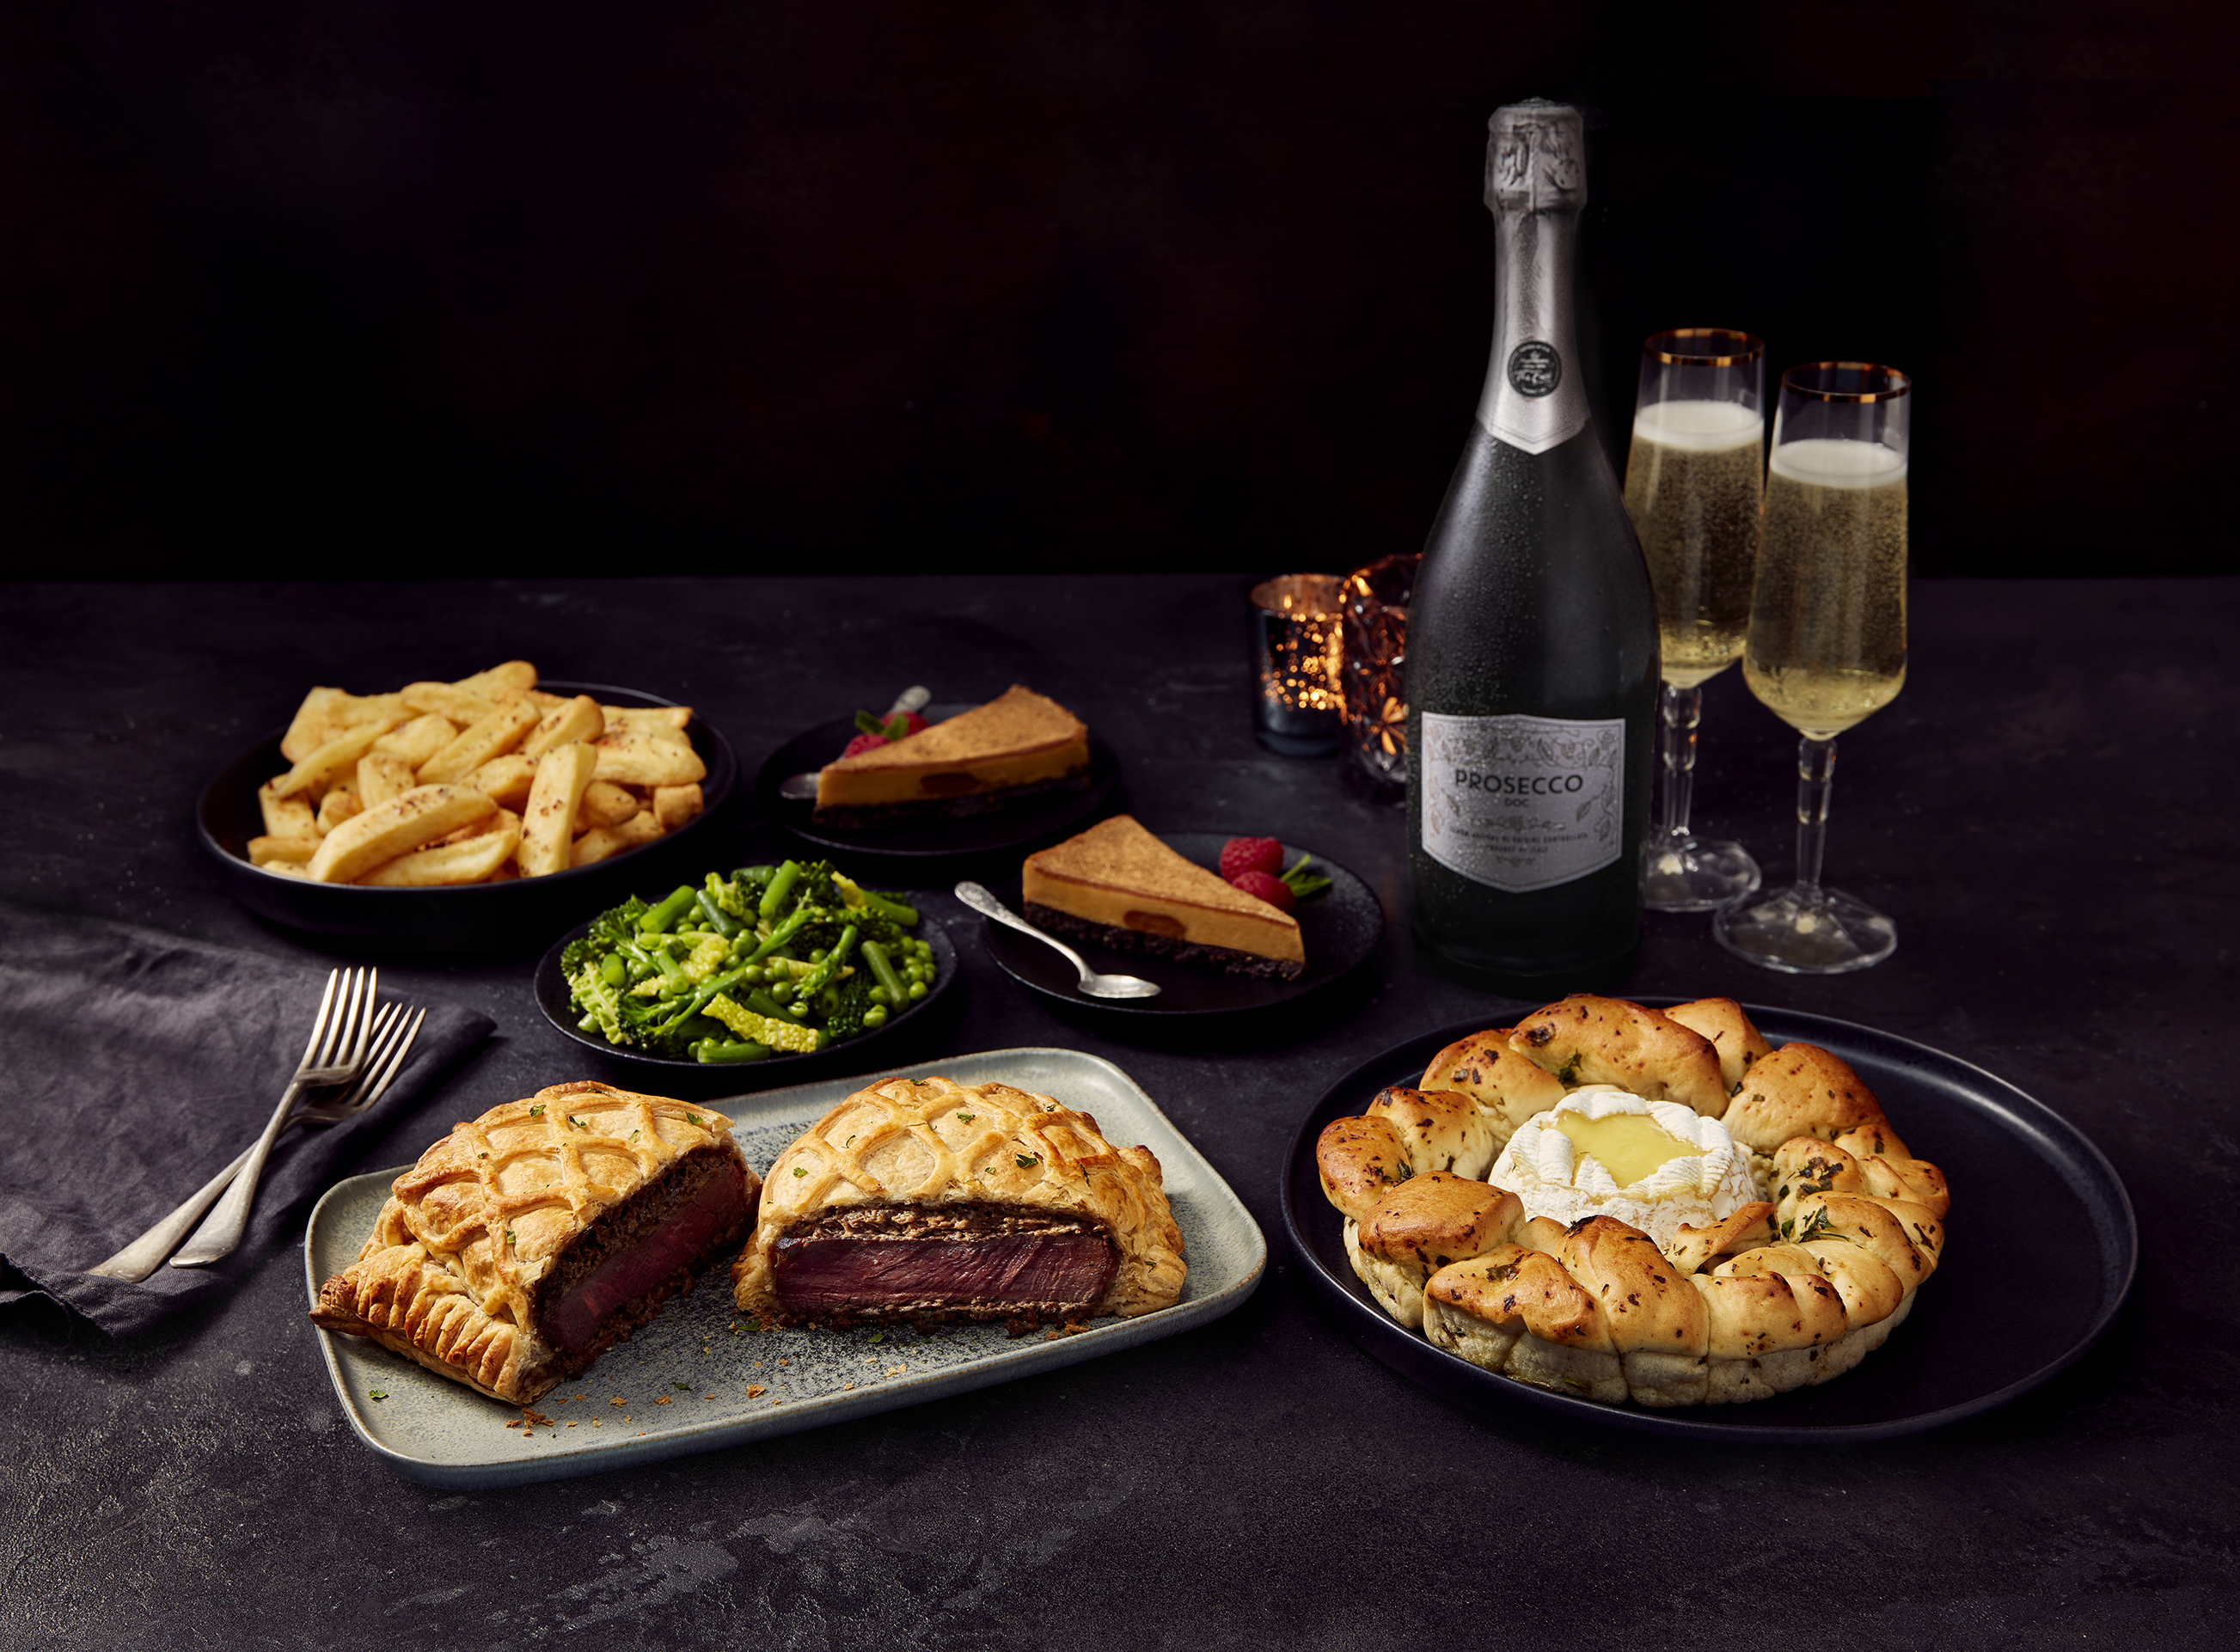 You can save up to £15.25 on this romantic meal for two